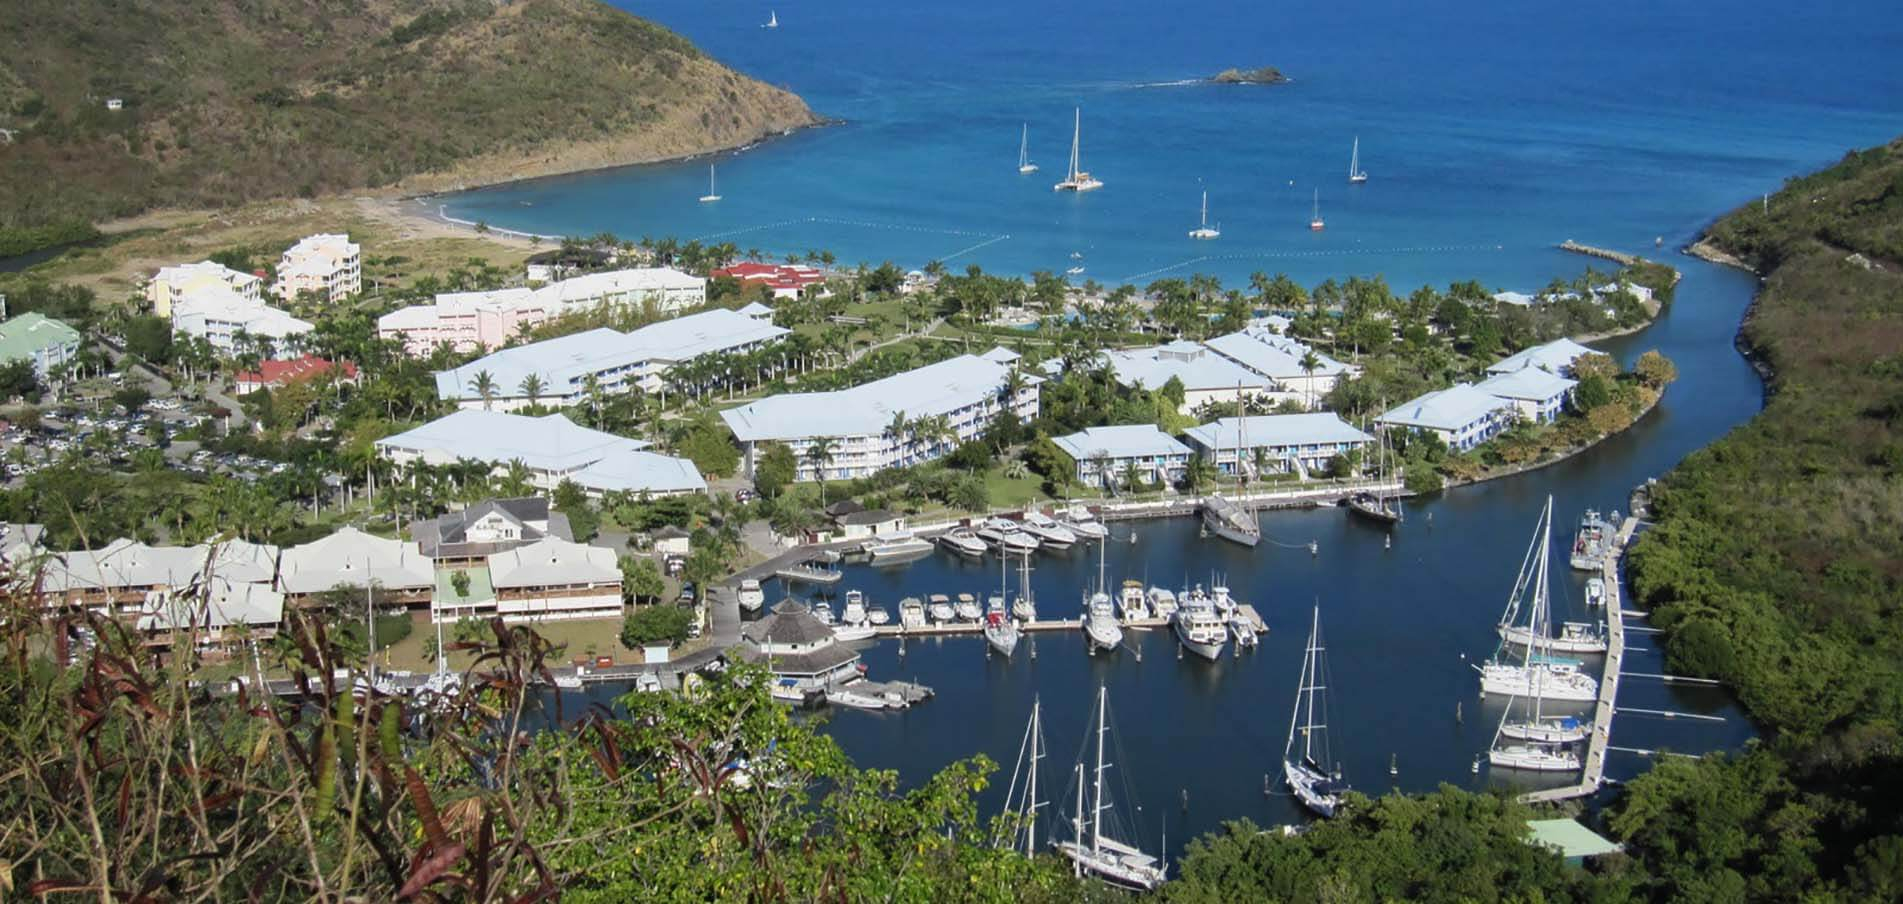 Location de yacht de luxe Saint Martin